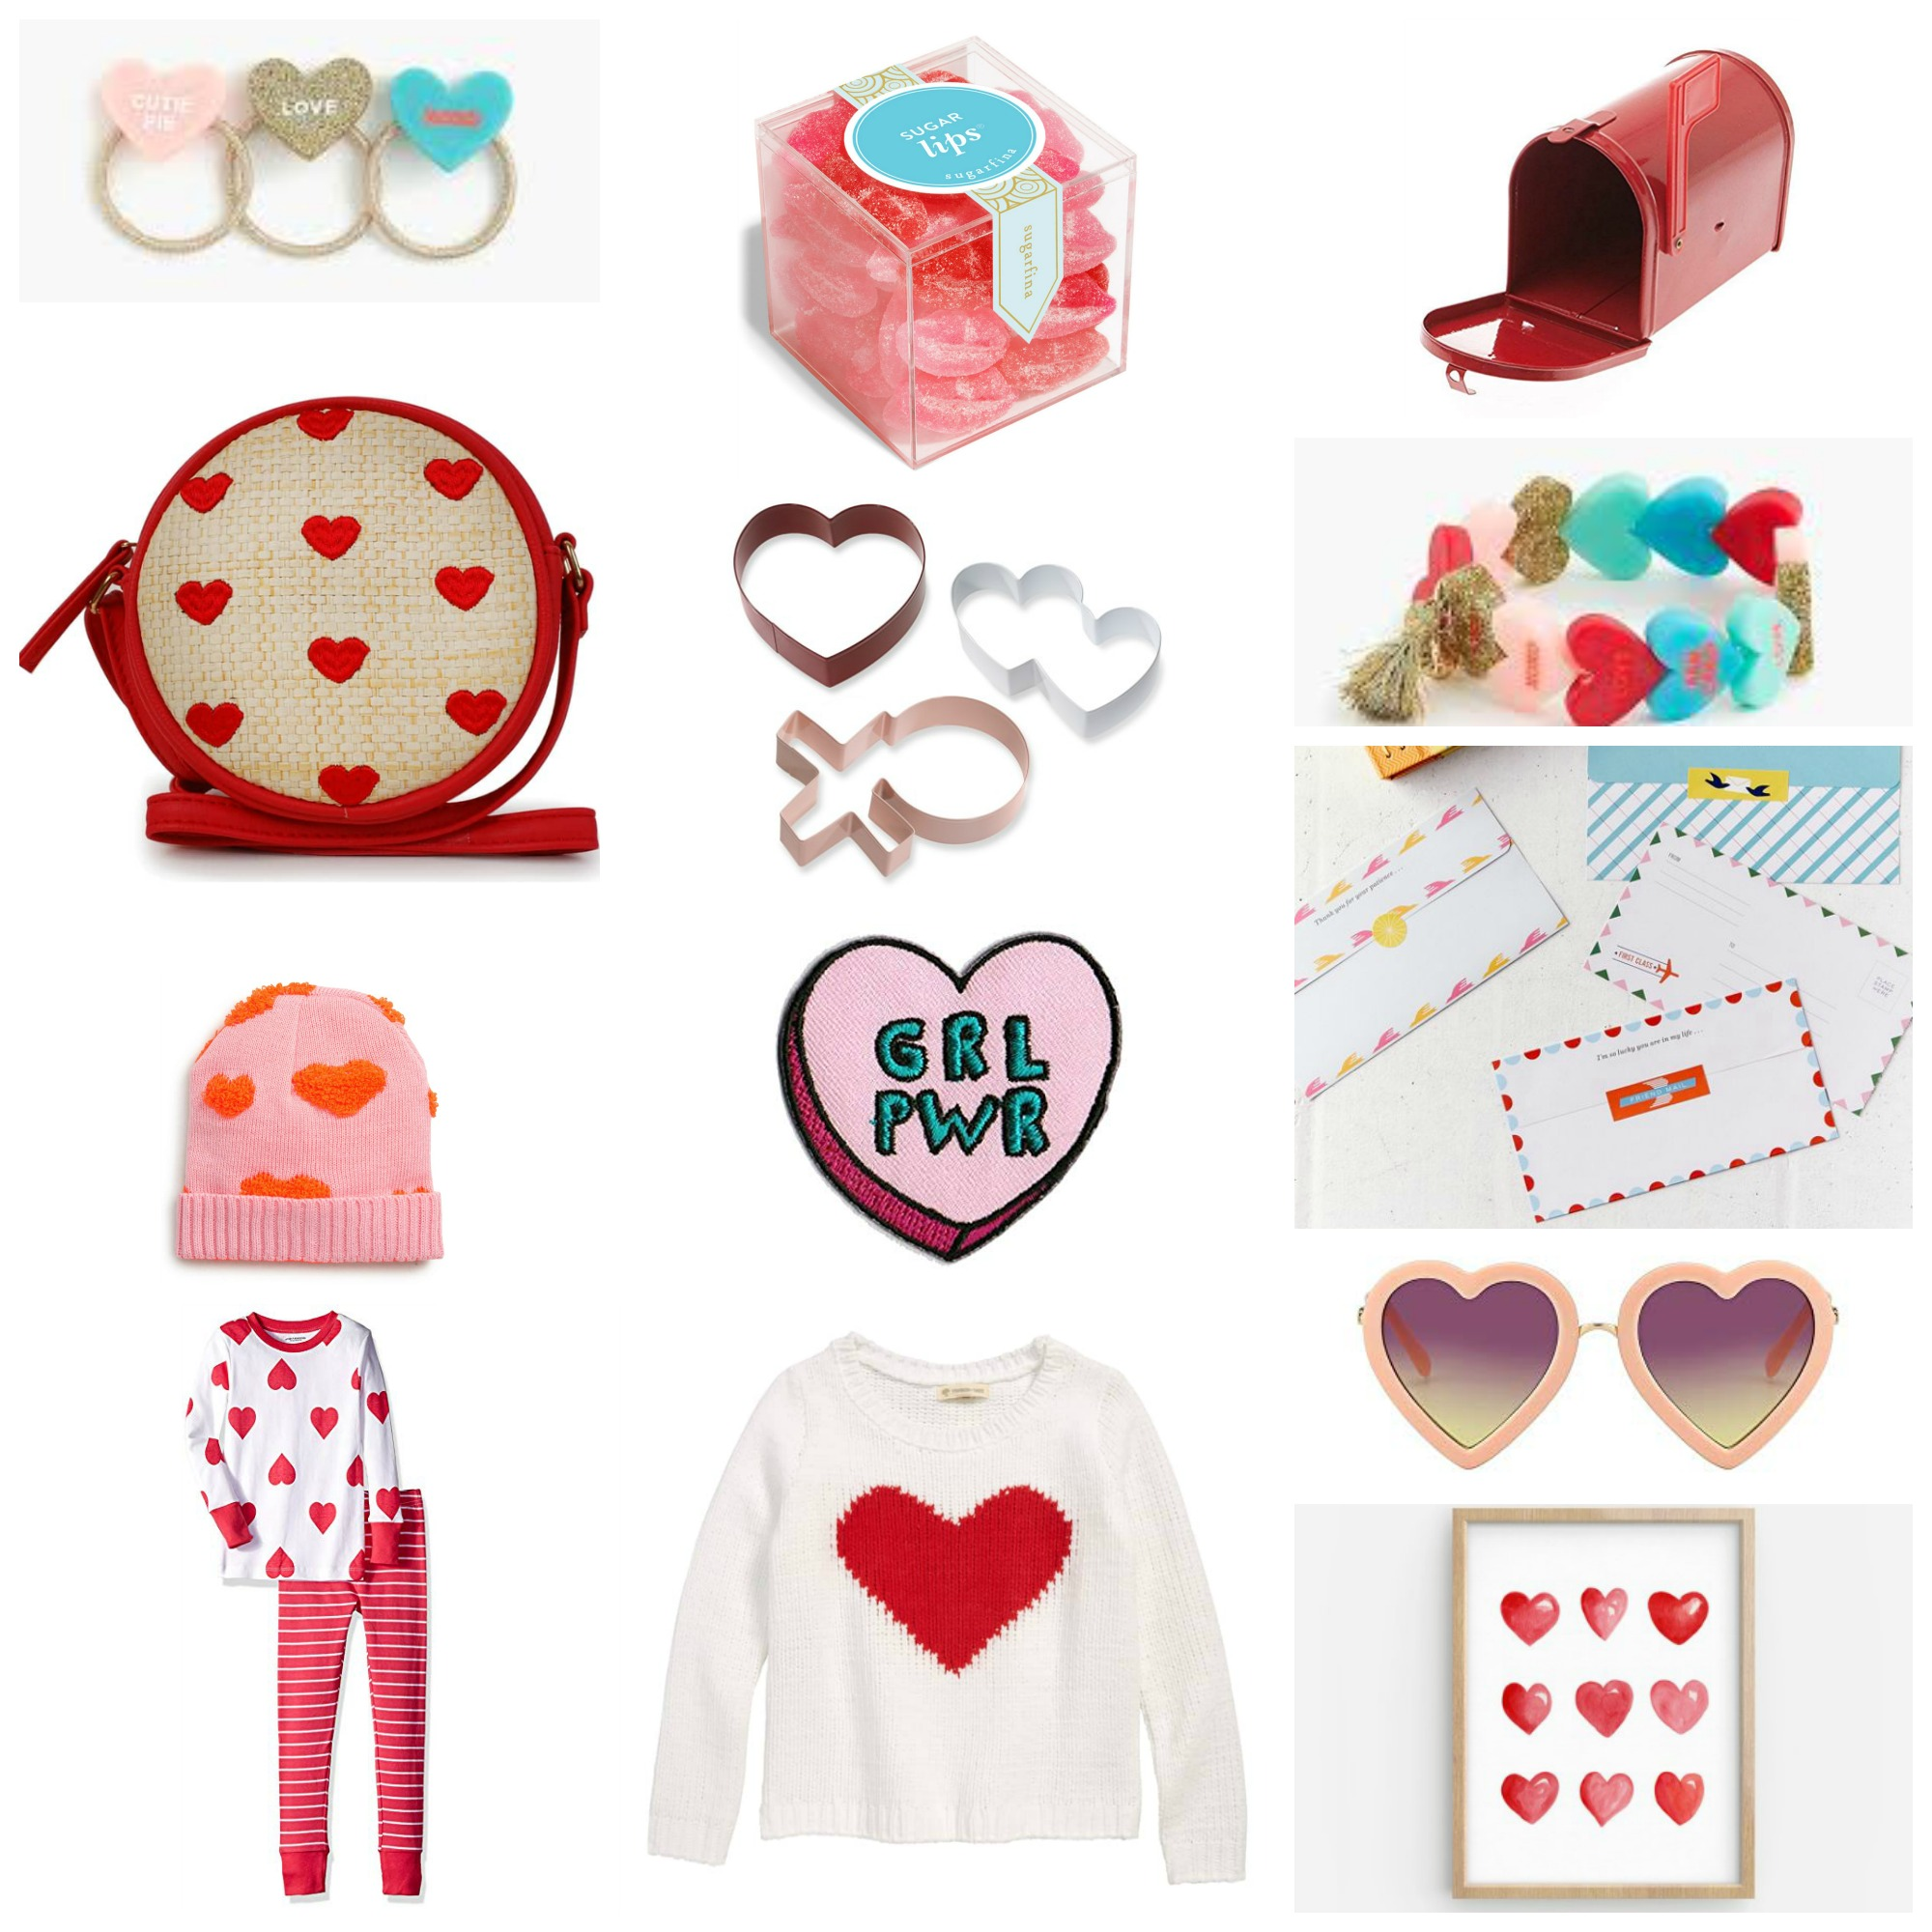 Valentine's gifts for girls